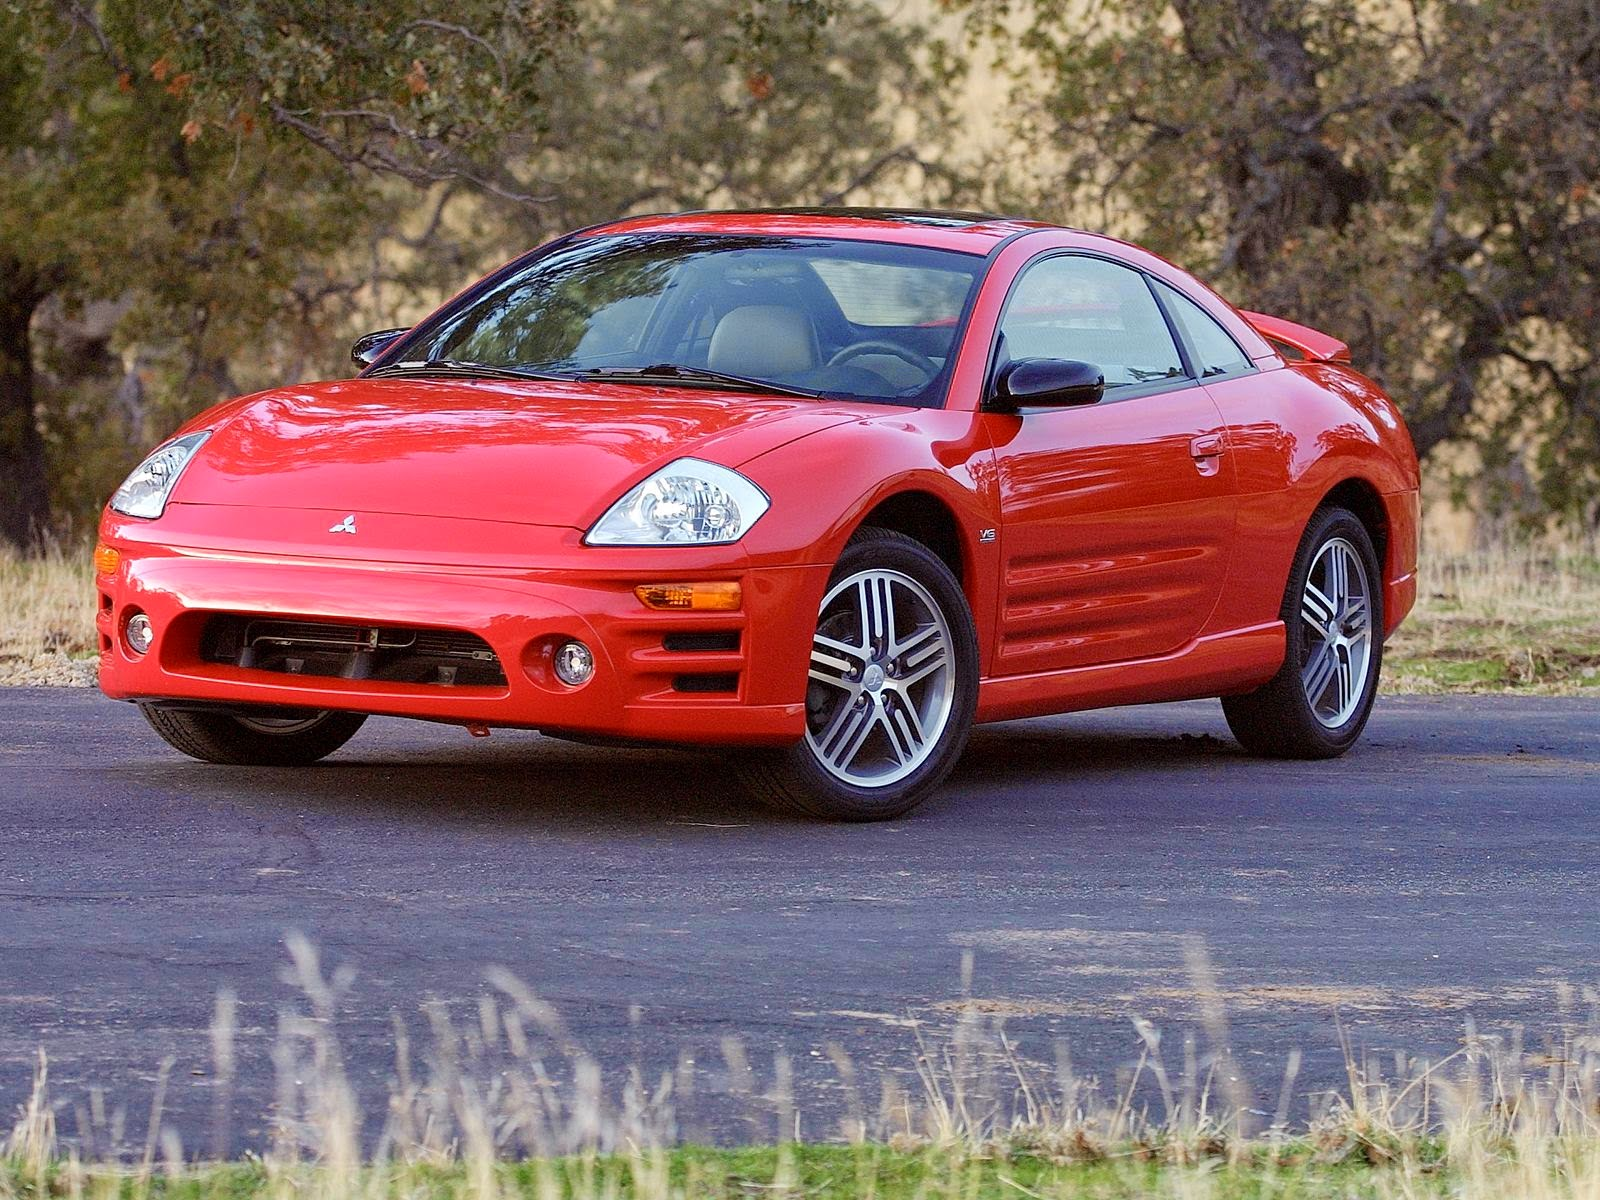 Mitsubishi Eclipse - The Sports Compact Car